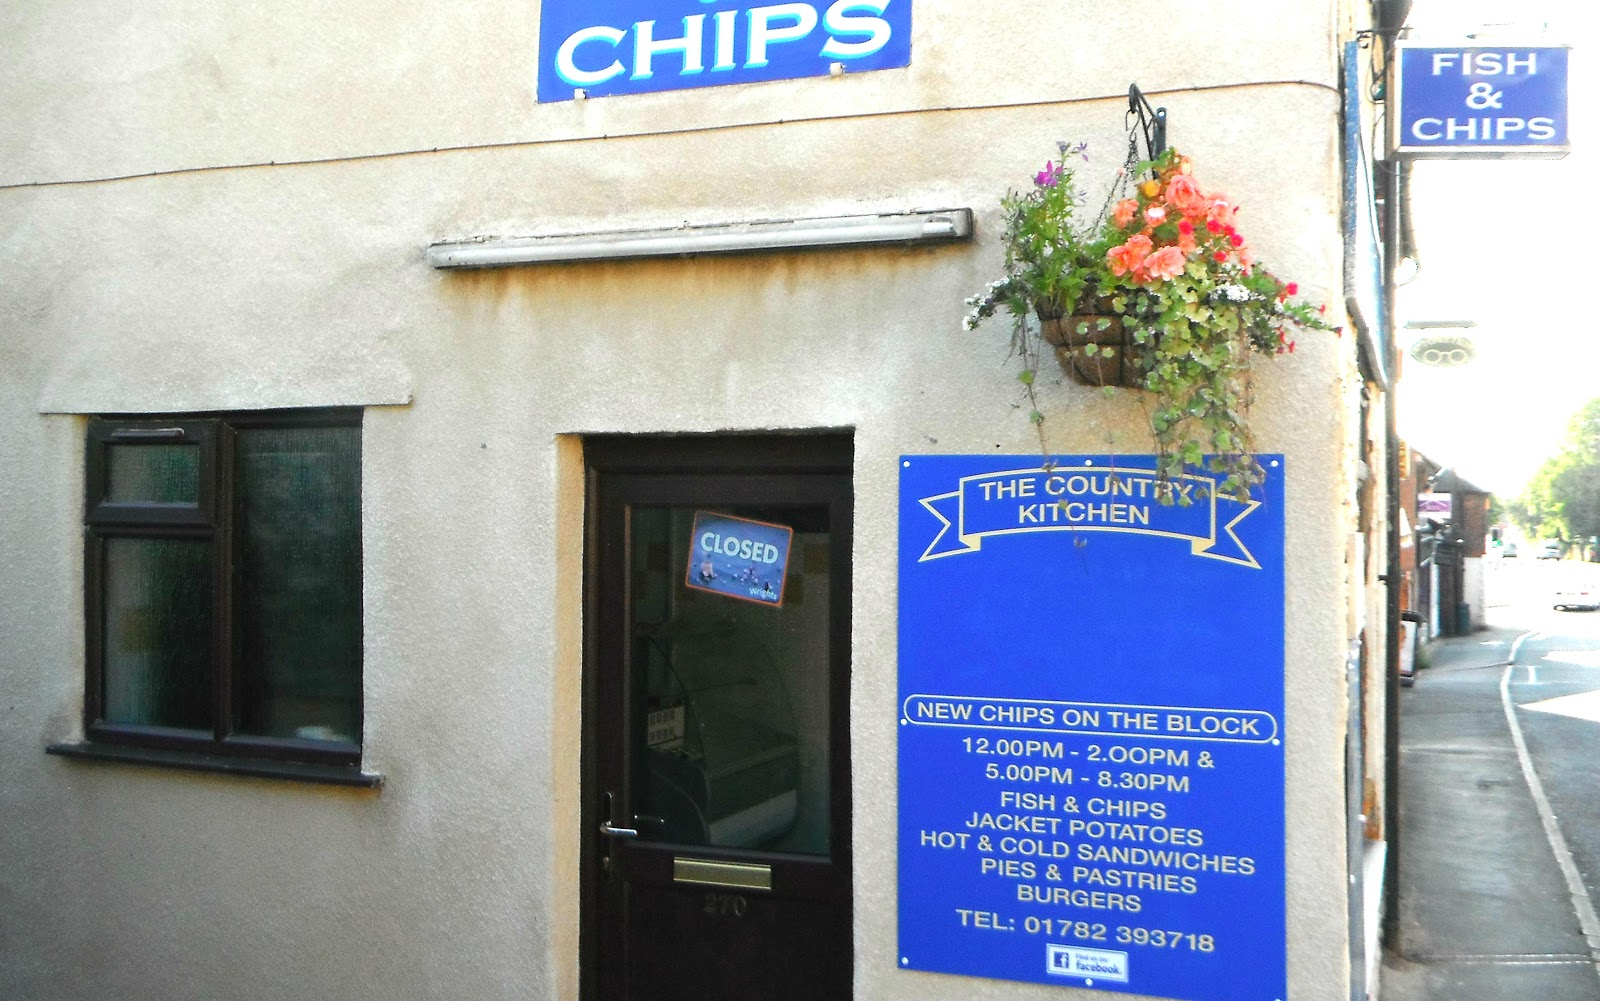 'New Chips On The Block' fish & chip shop